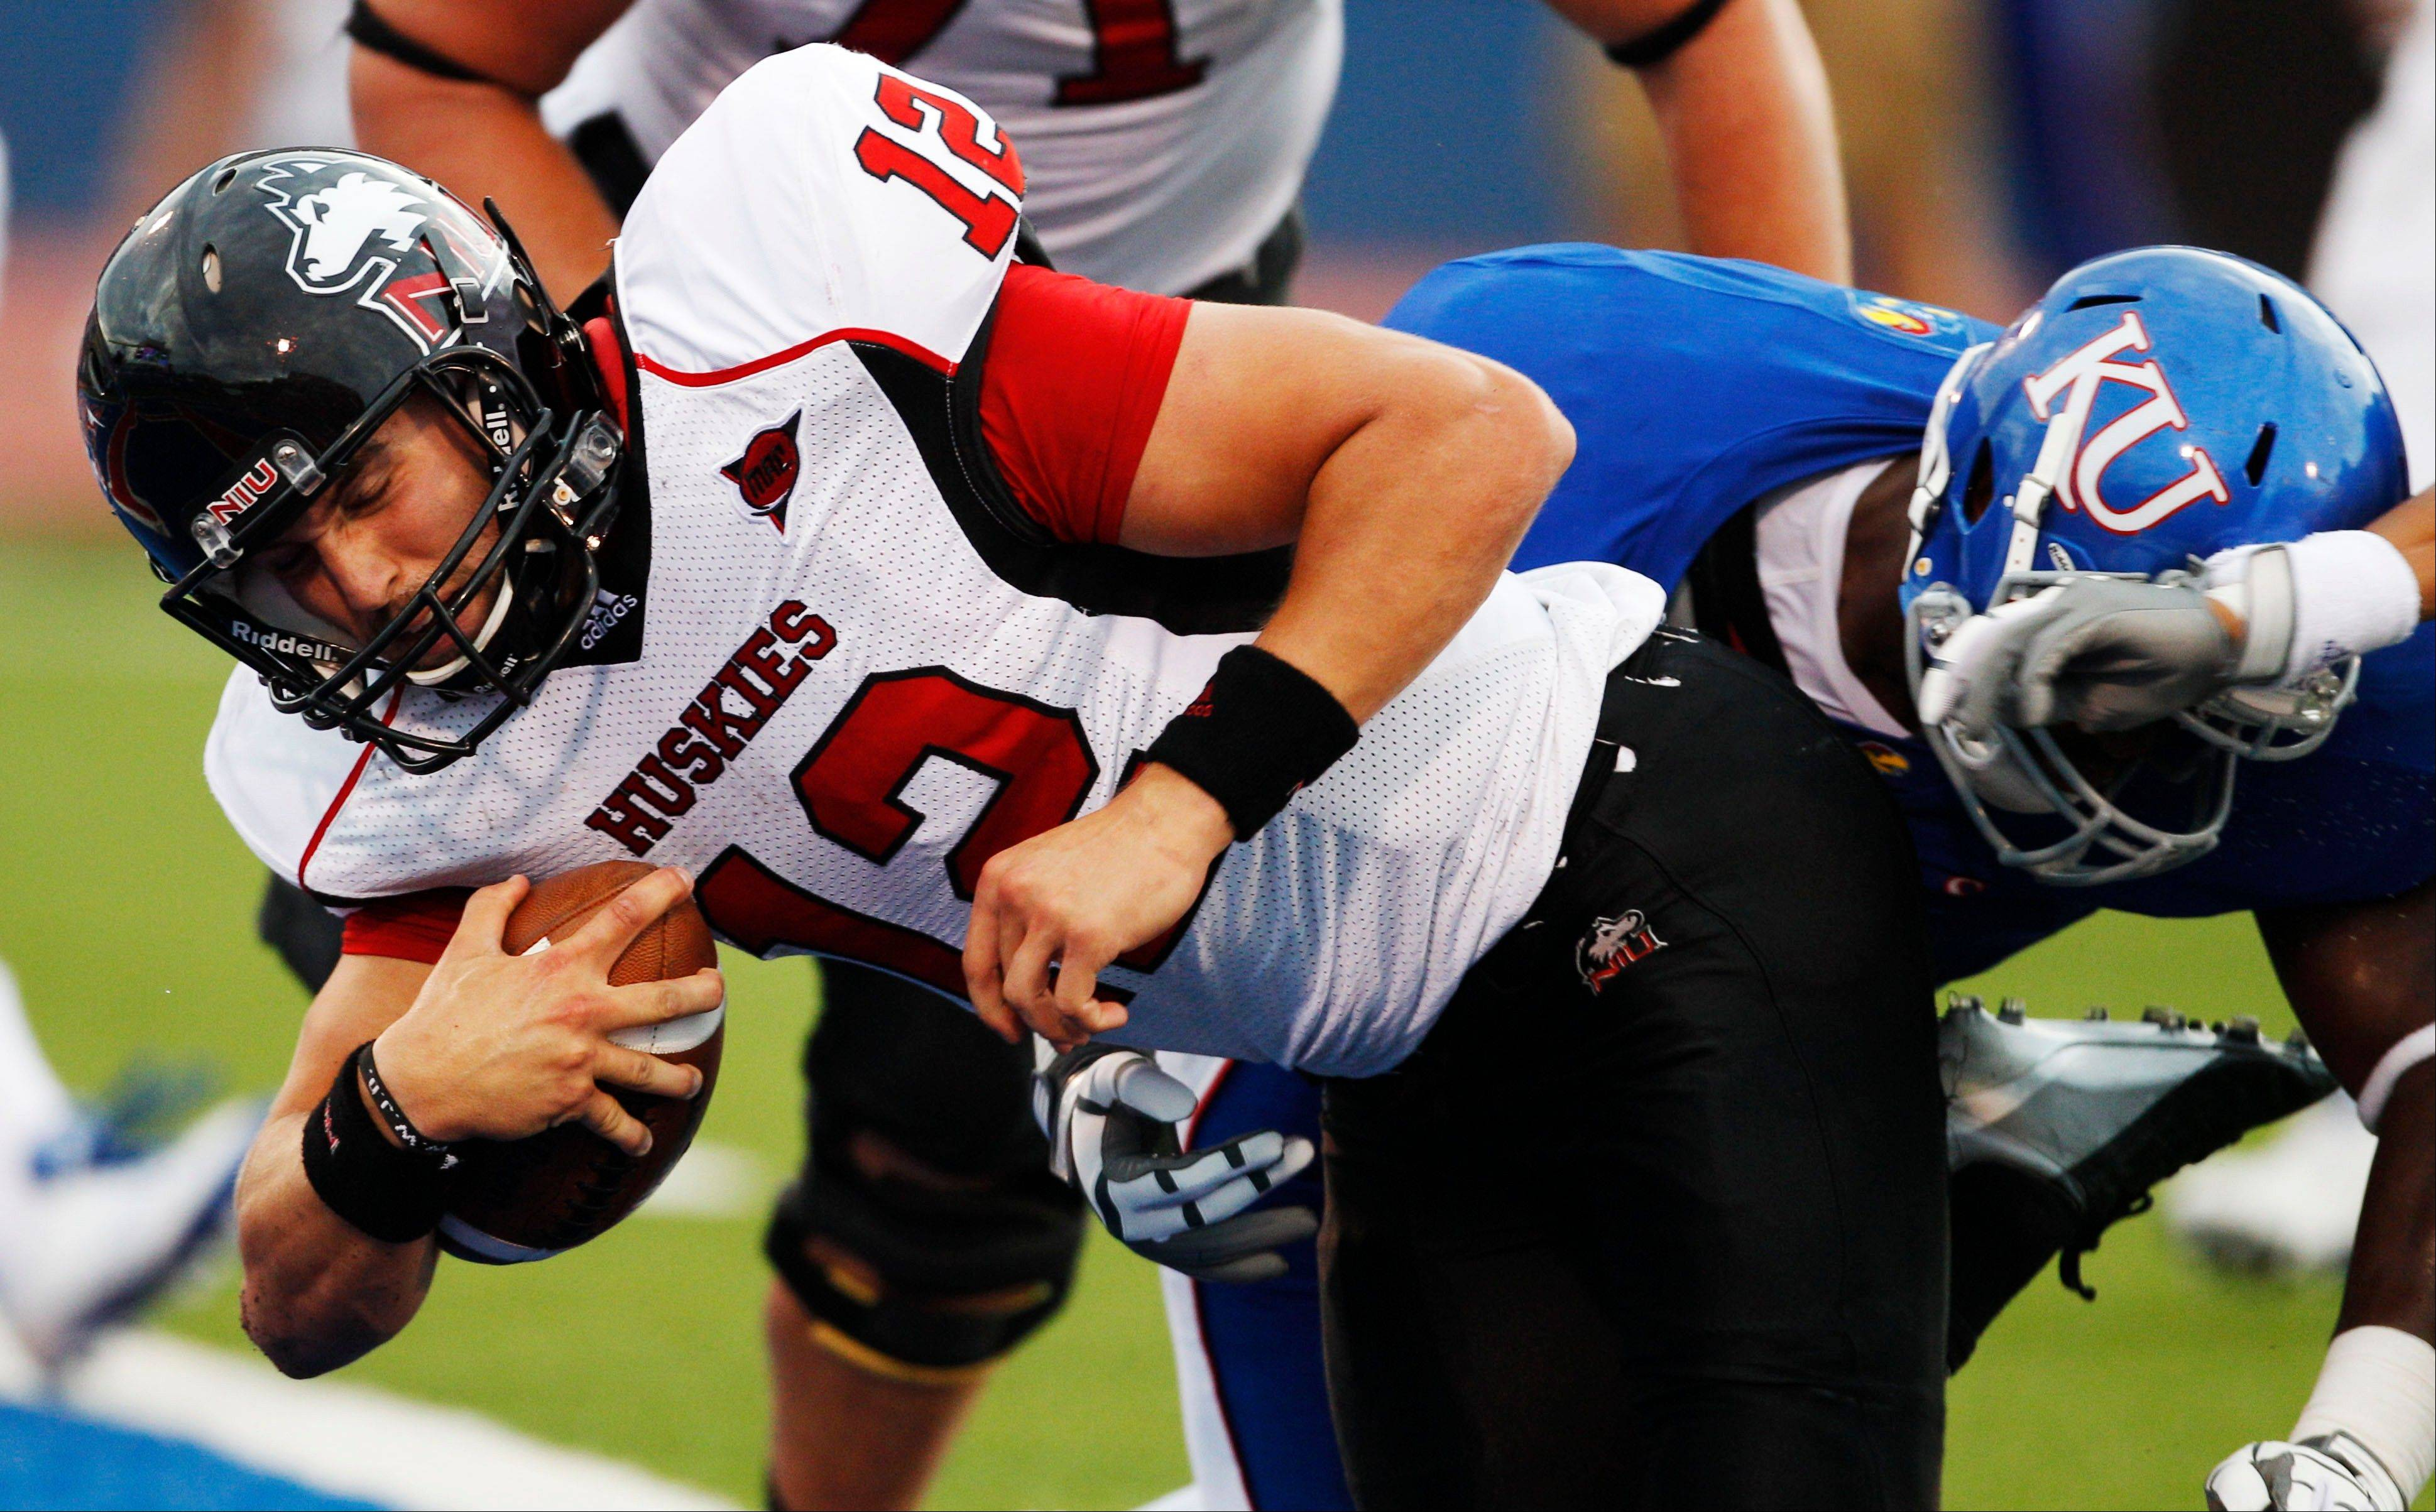 Northern Illinois quarterback Chandler Harnish gets past Kansas safety Bradley McDougald, right, for a touchdown Saturday during the first half in Lawrence, Kan.